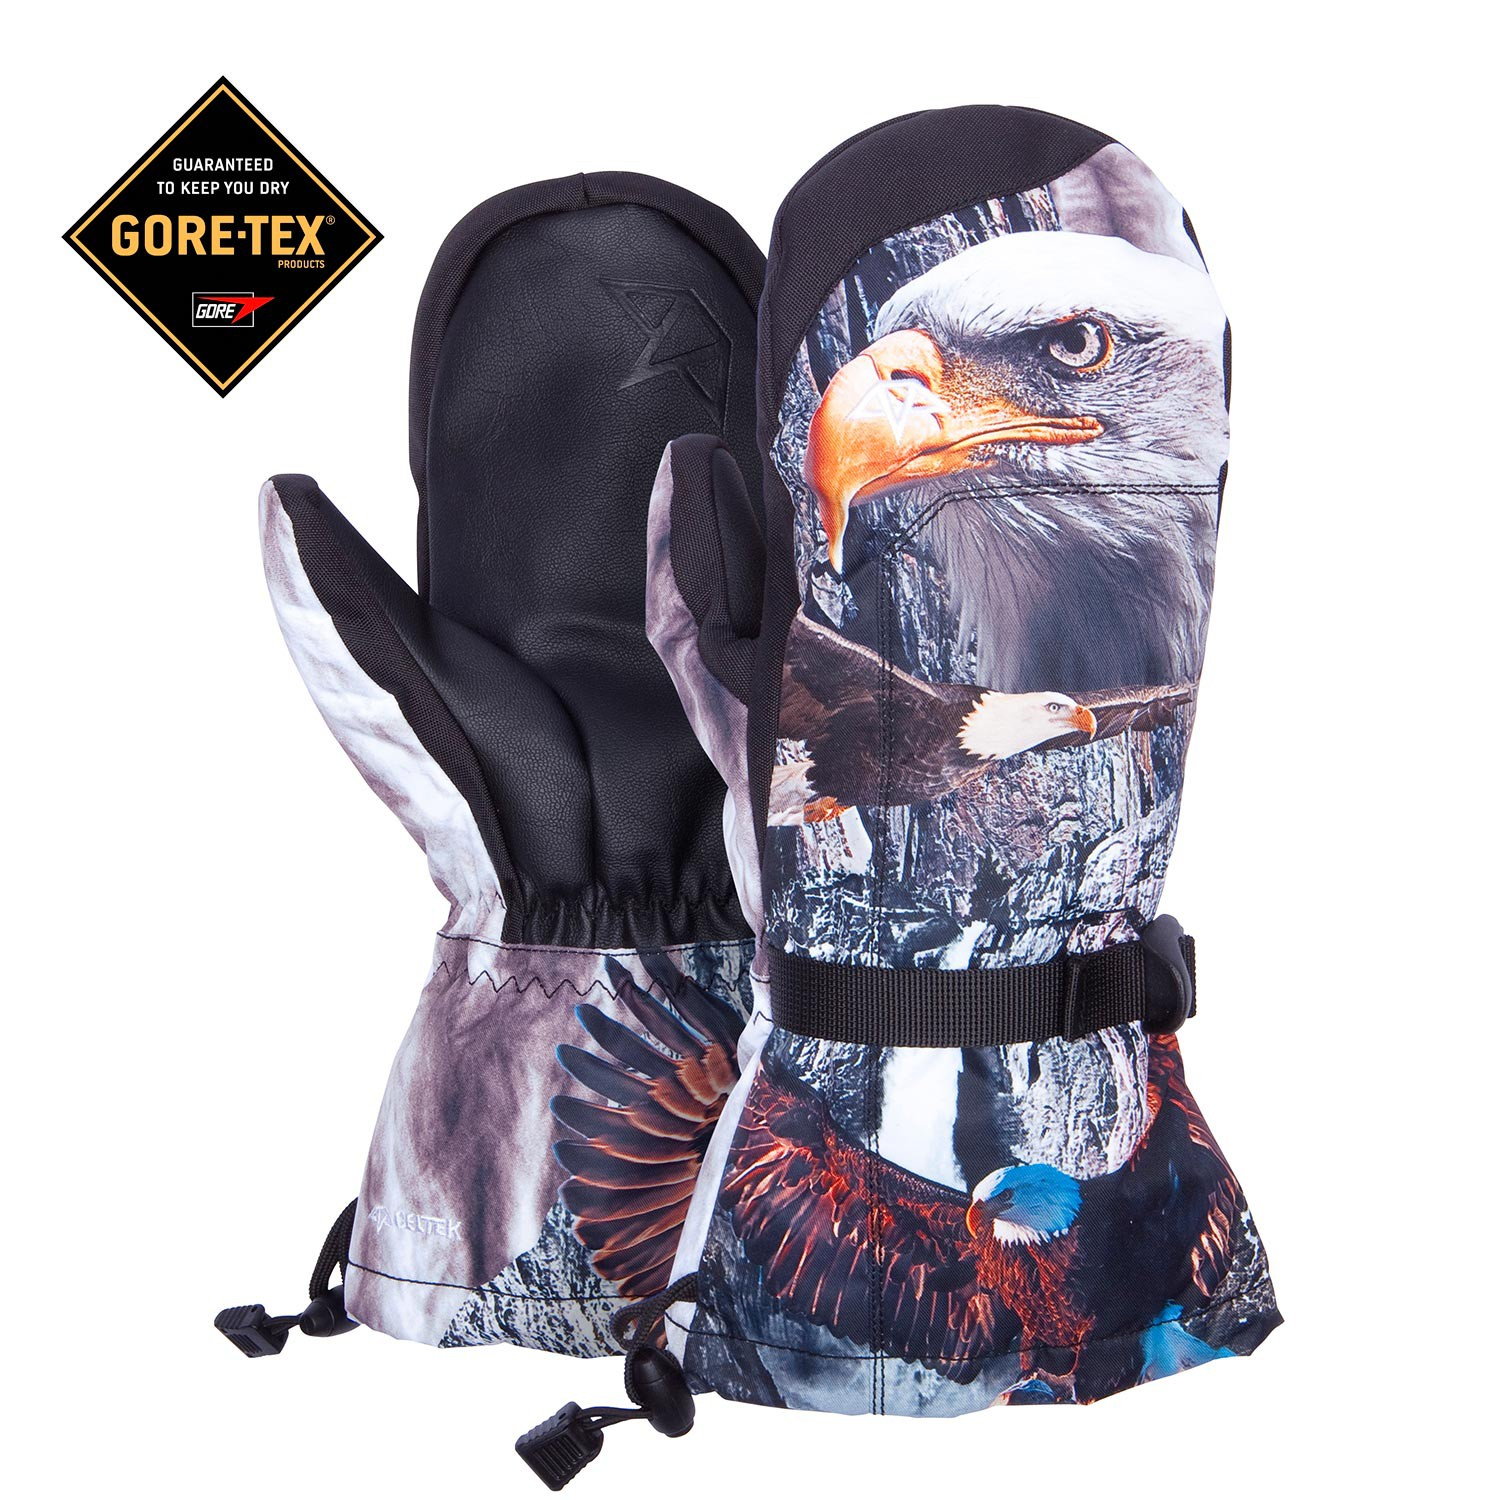 Rukavice Celtek El Nino Over Mitten Gore-Tex eagle eye